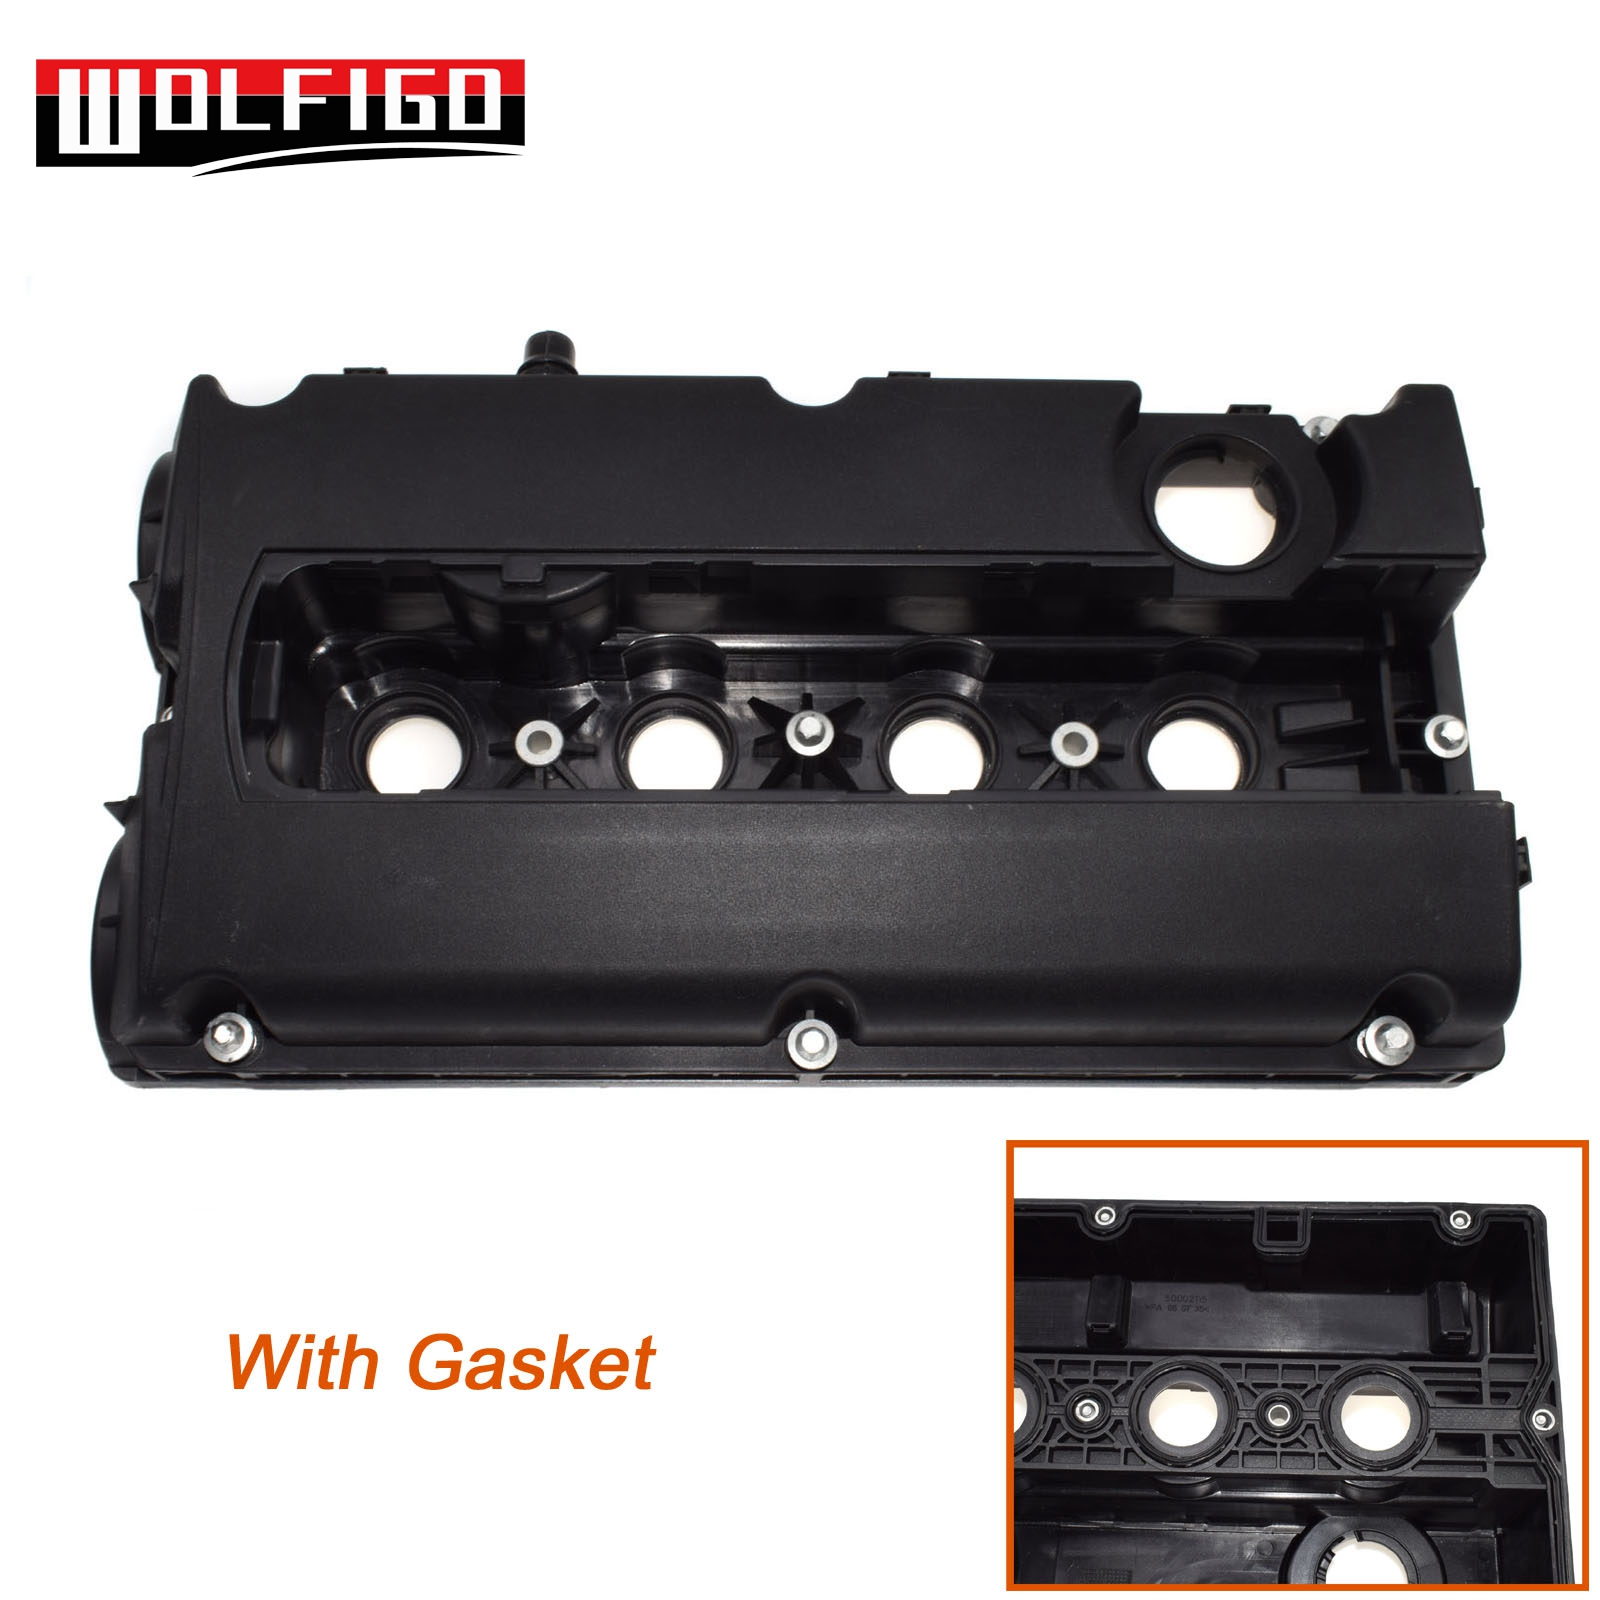 WOLFIGO New 55556284 5607159 For Vauxhall Astra G MK4 H MK5 Meriva CAM ROCKER ENGINE VALVE COVER and GASKET Z16XEP 1.6 5607592-in Valves & Parts from Automobiles & Motorcycles    1